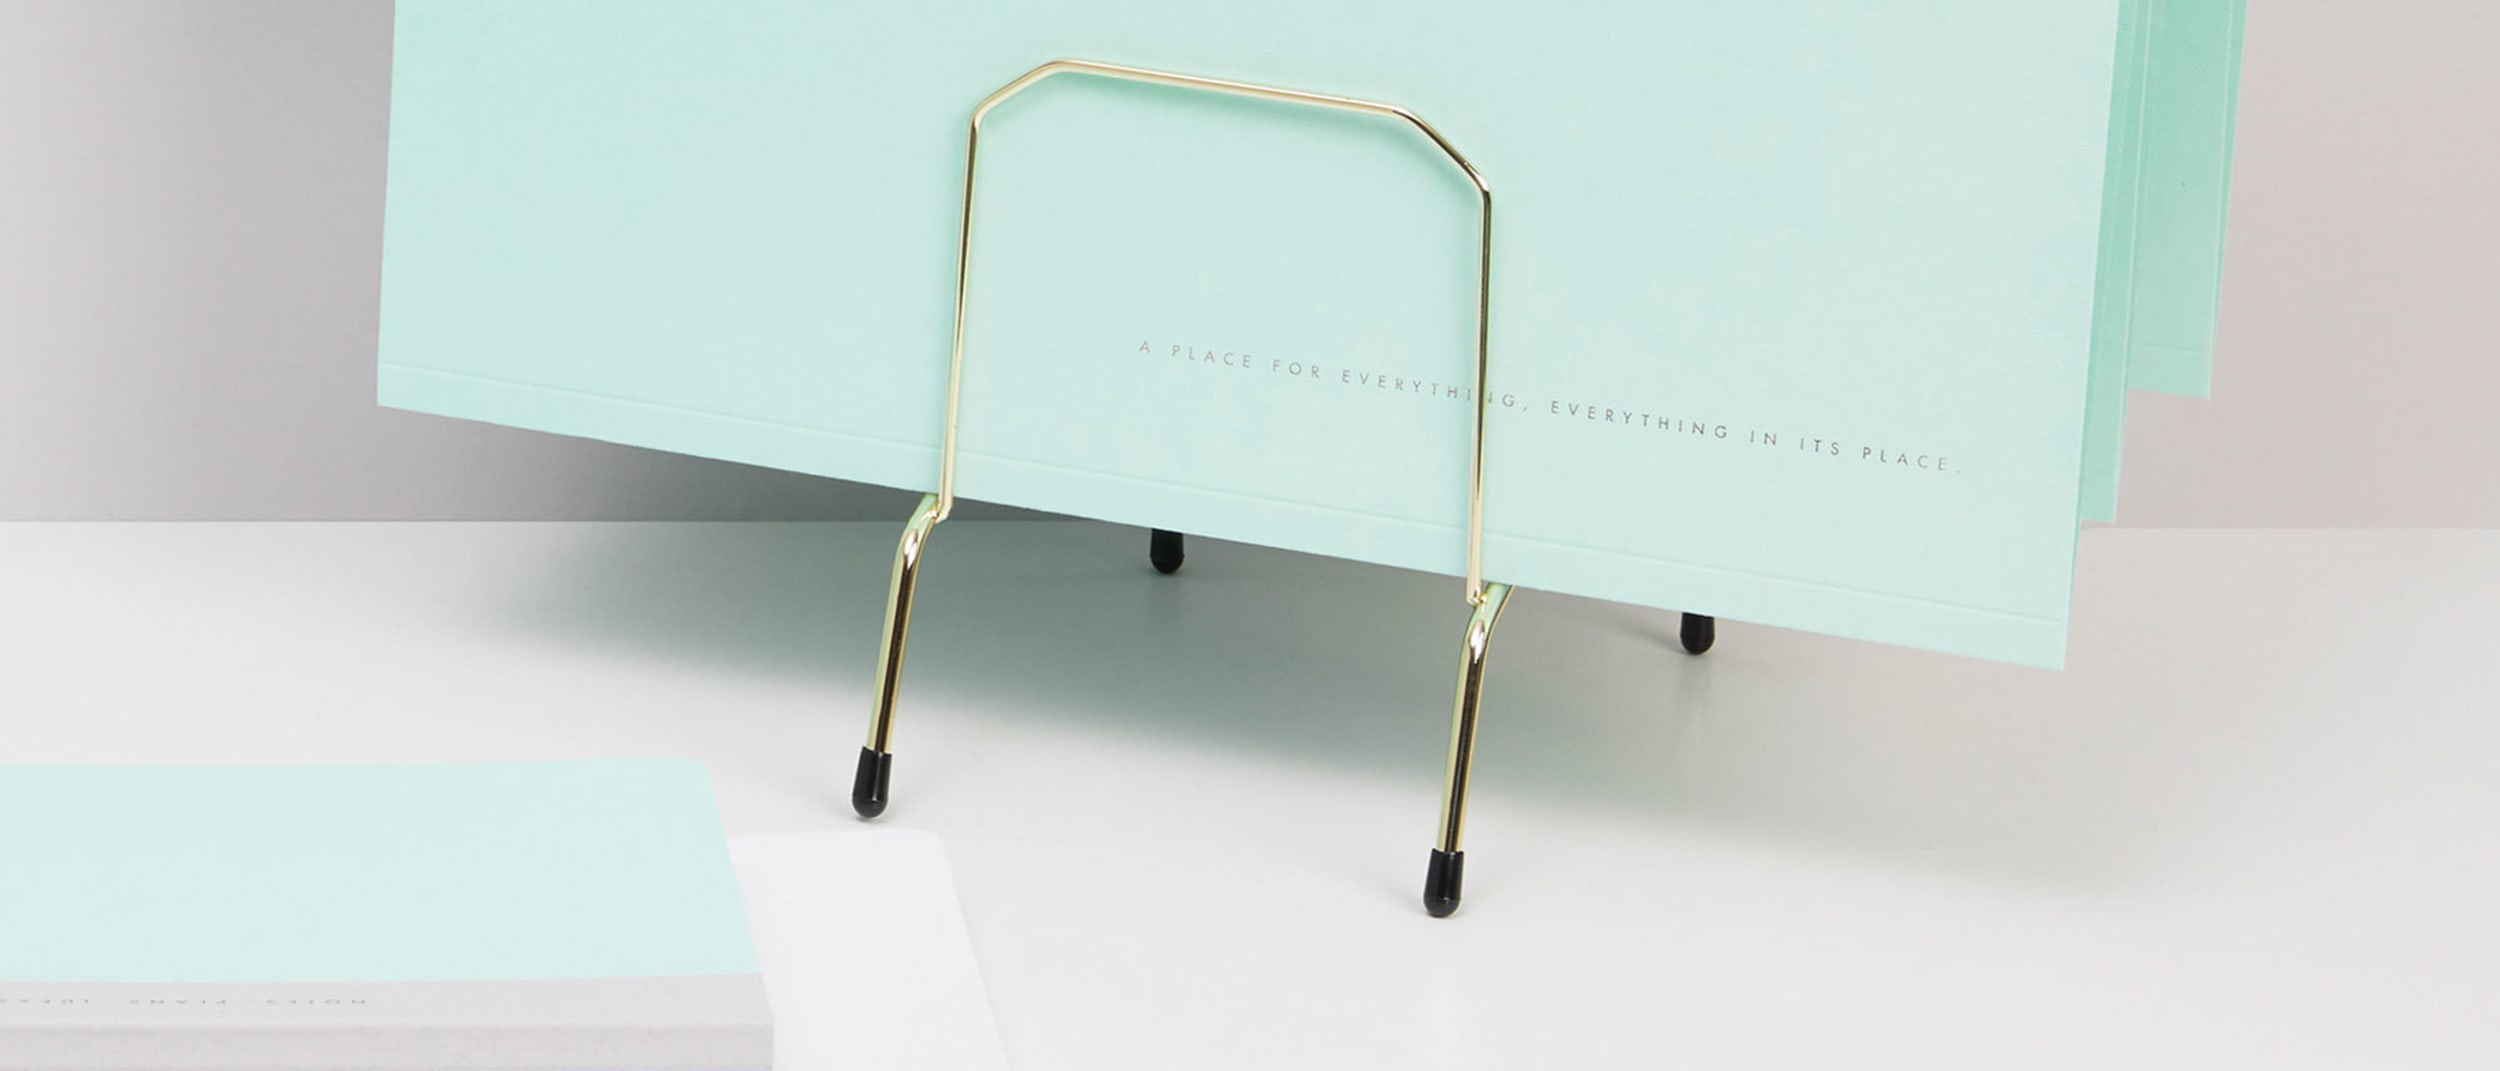 Find freedom from clutter with kikki.k's organisation workshop